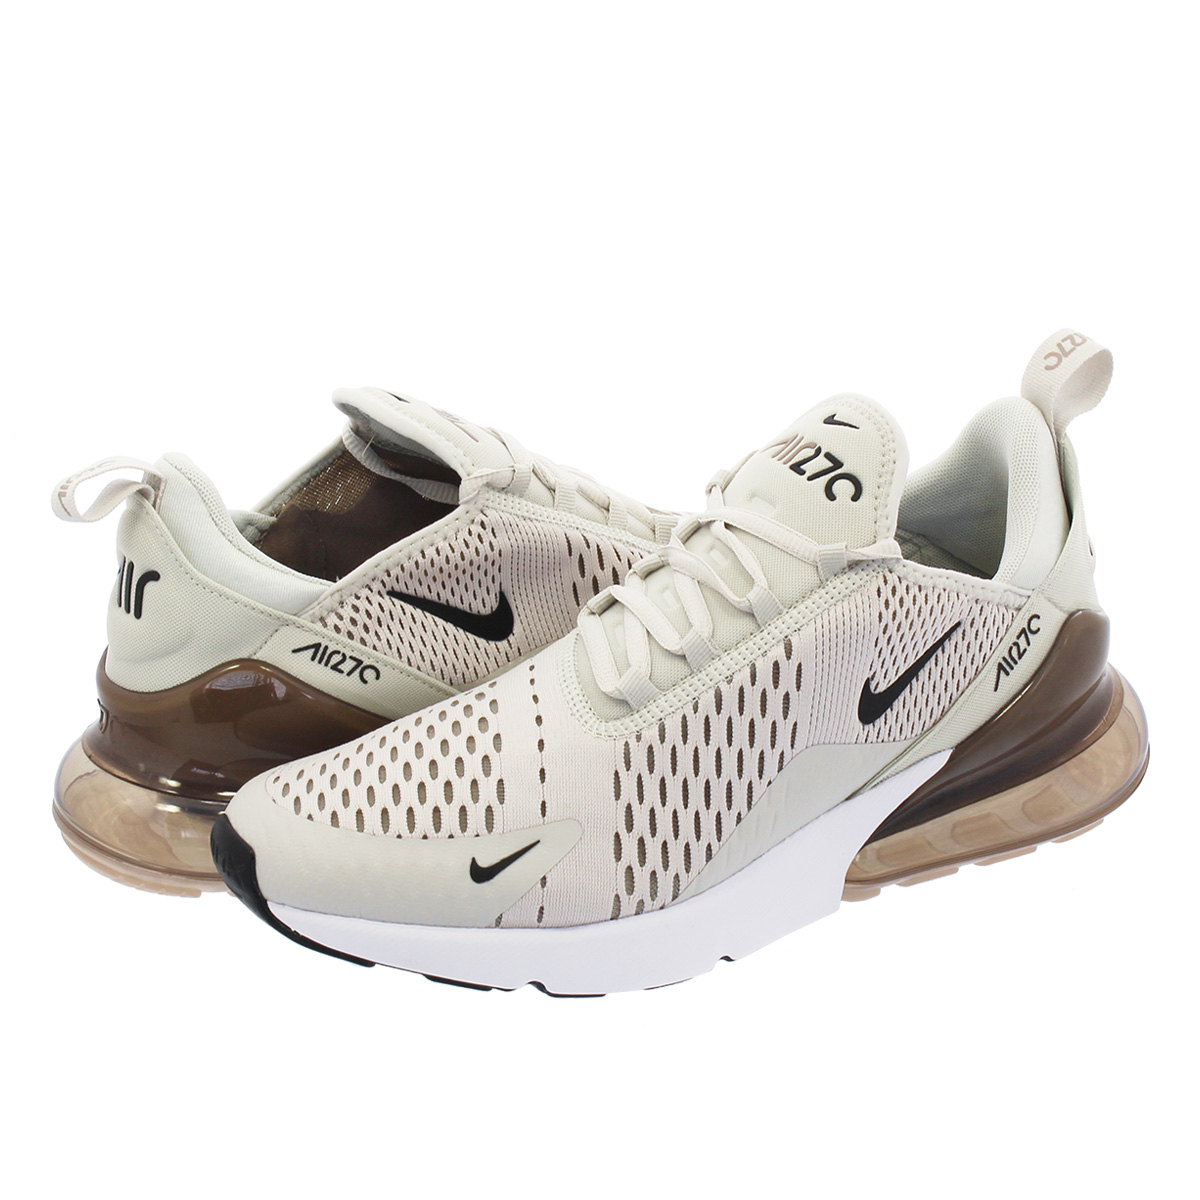 NIKE AIR MAX 270 ナイキ エア マックス 270 LIGHT BONE/BLACK/SEPIA ah8050-007